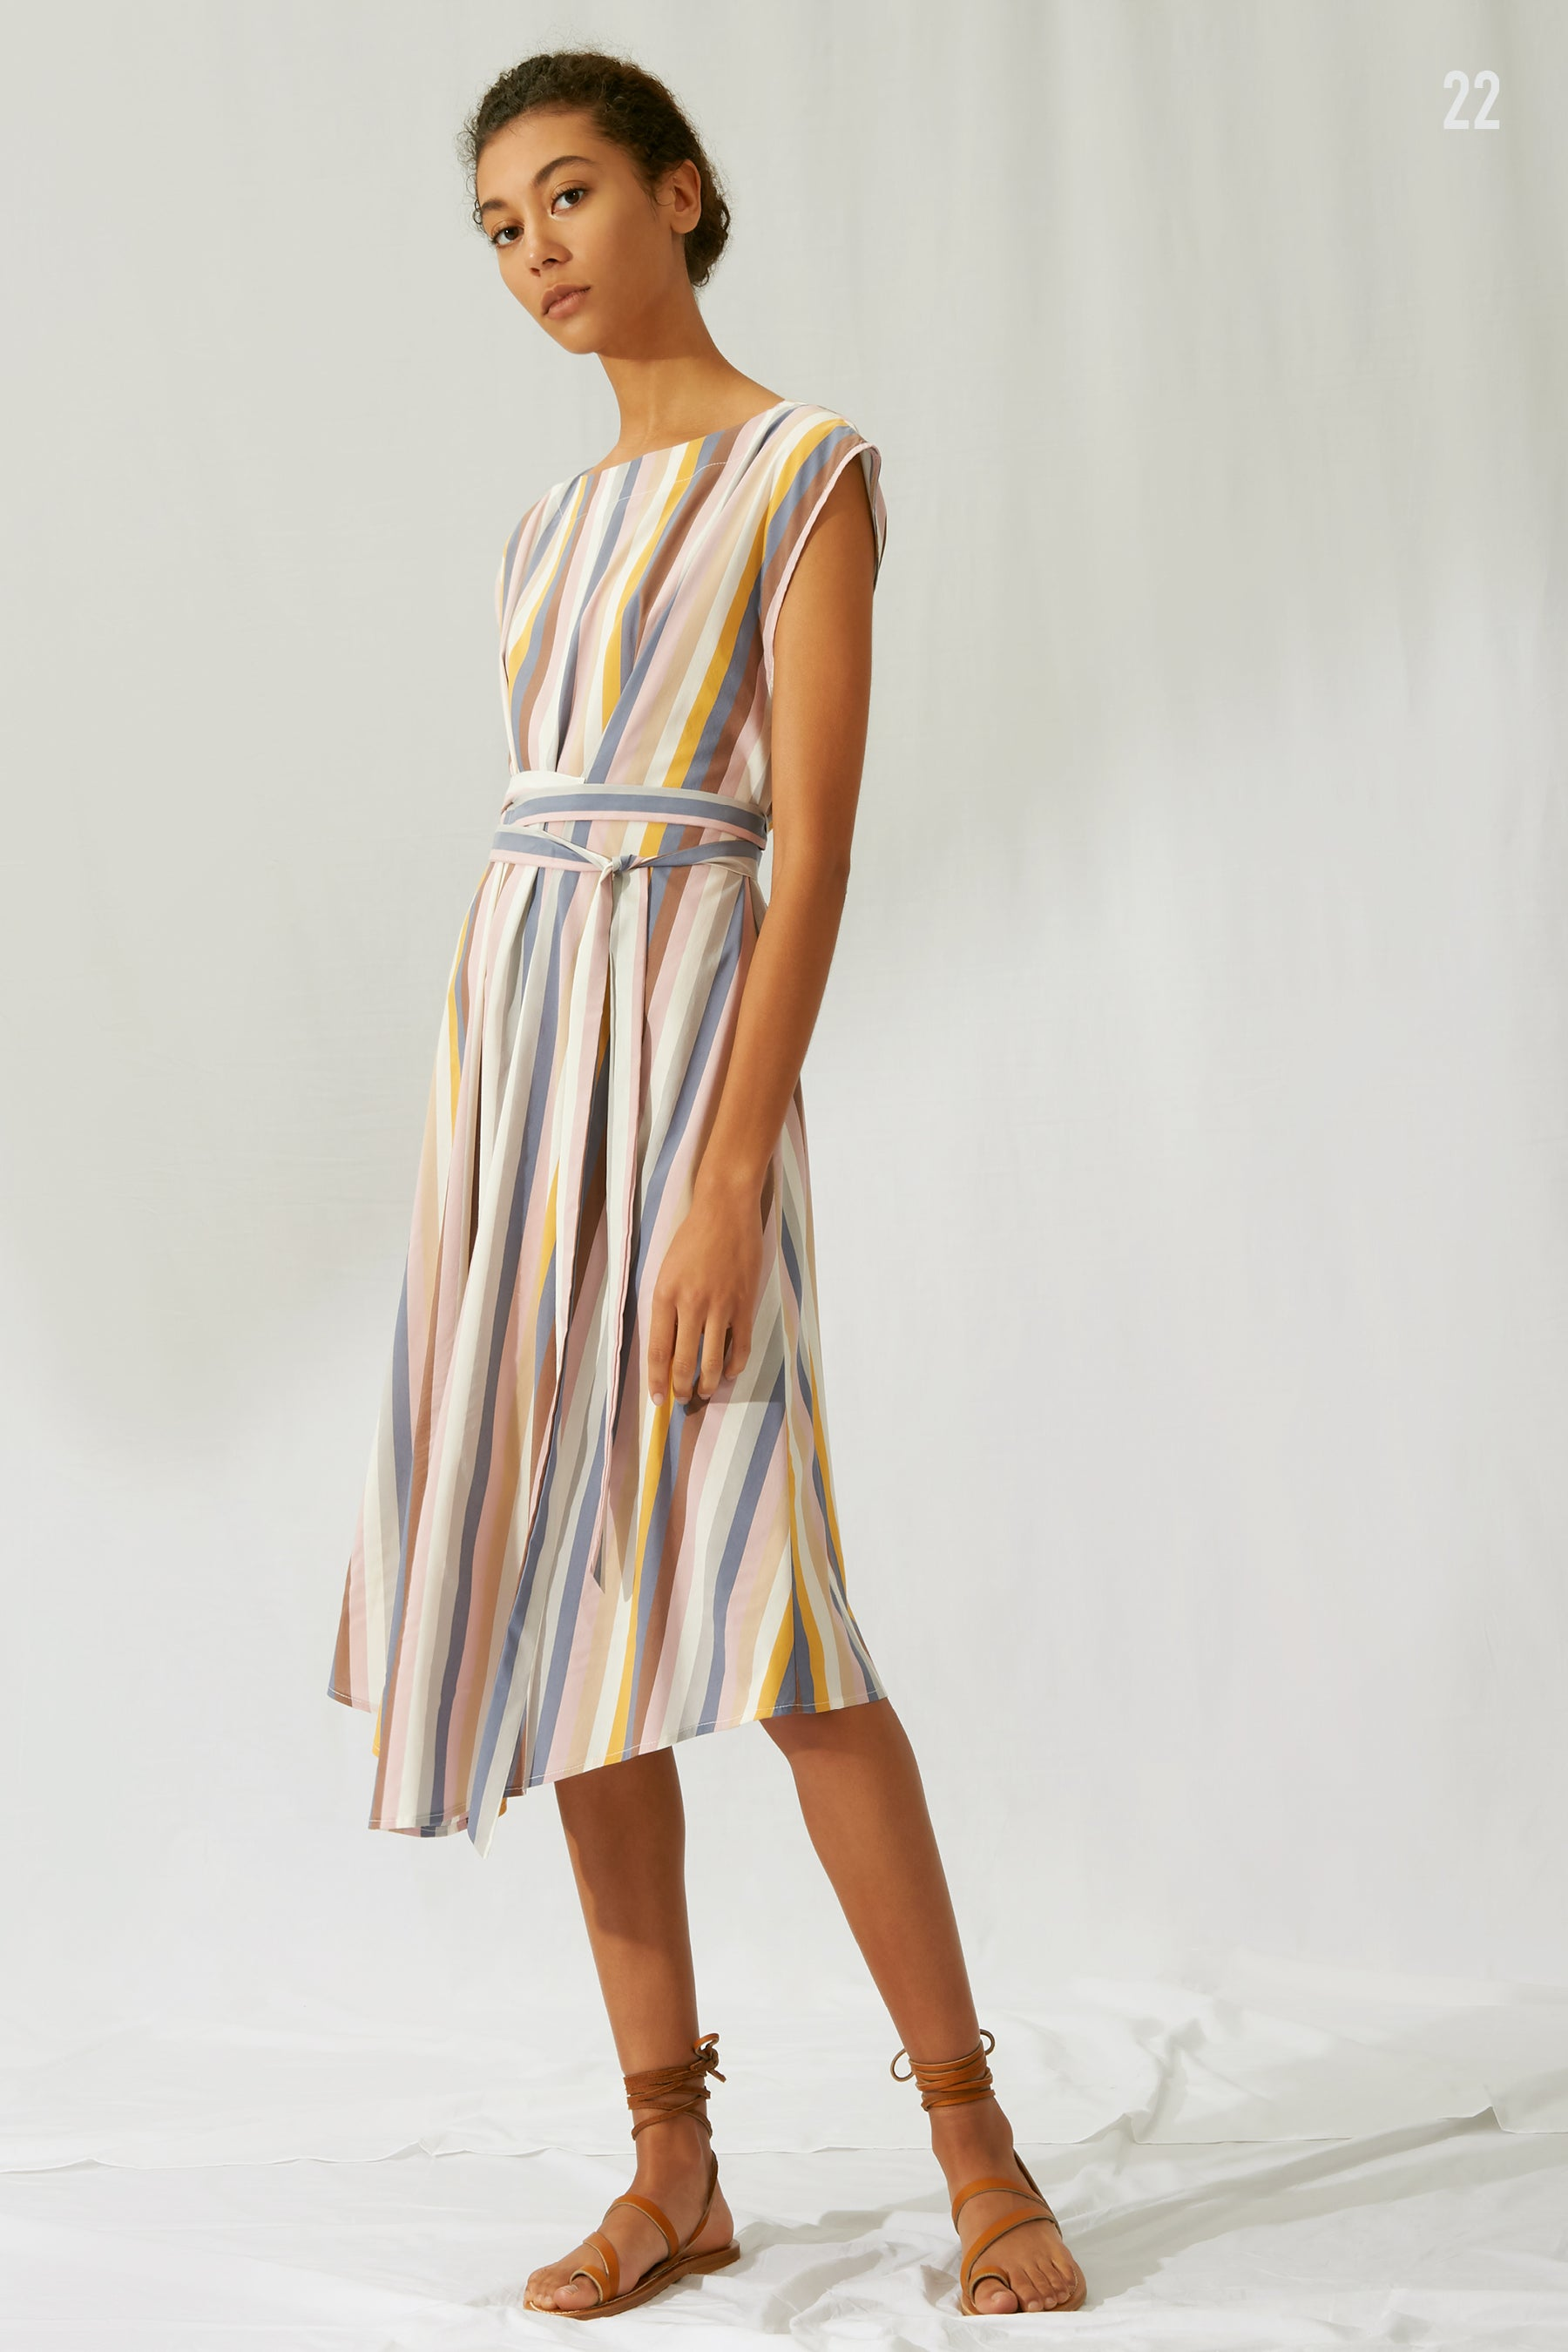 Kal Rieman Spring 2020 Lookbook Look 22